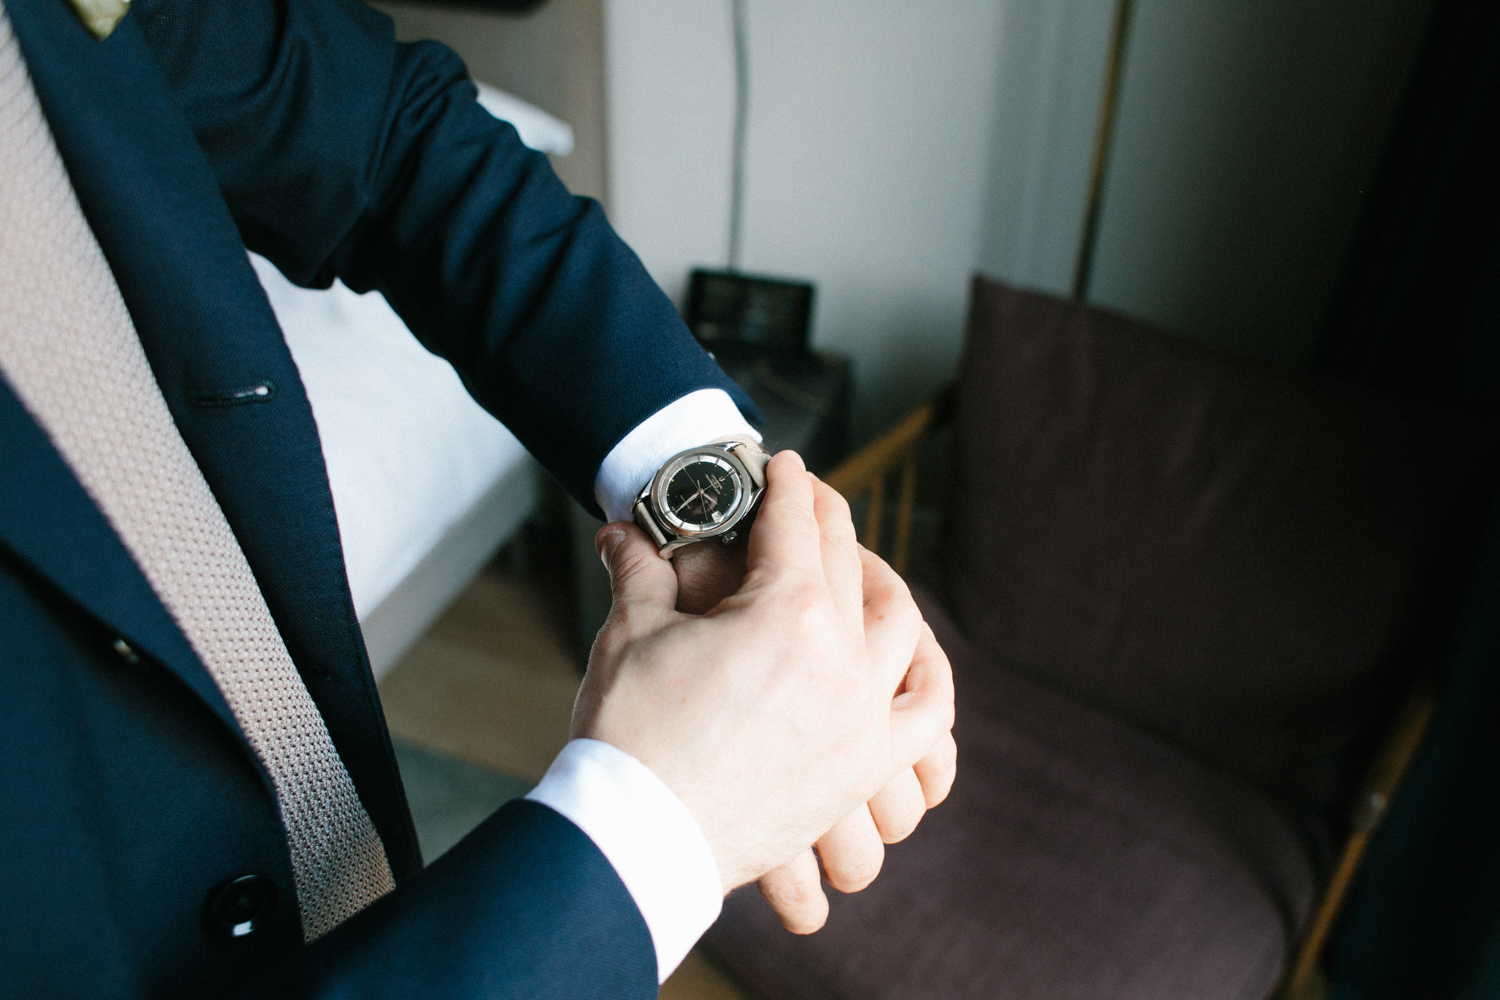 Photograph of grooms watch